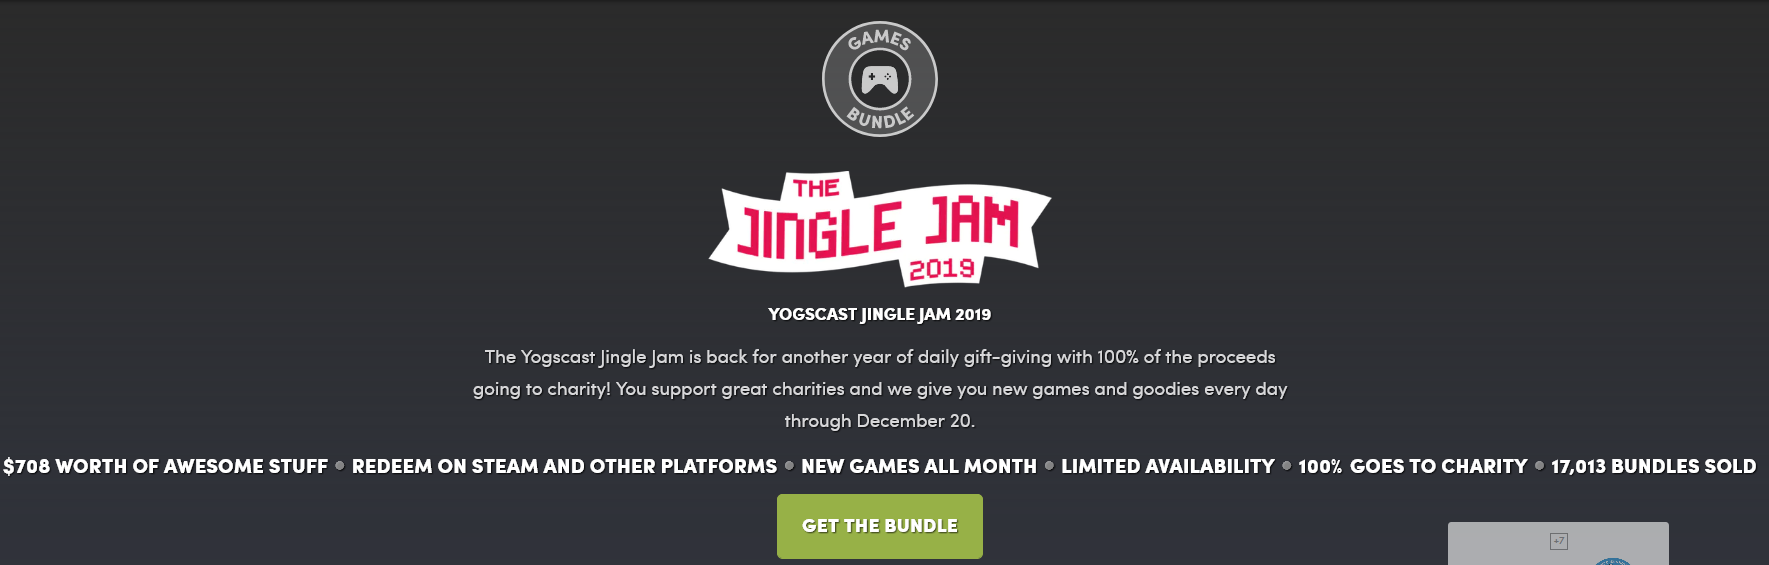 Screenshot_2019-12-02 Yogscast Jingle Jam 2019(1).png